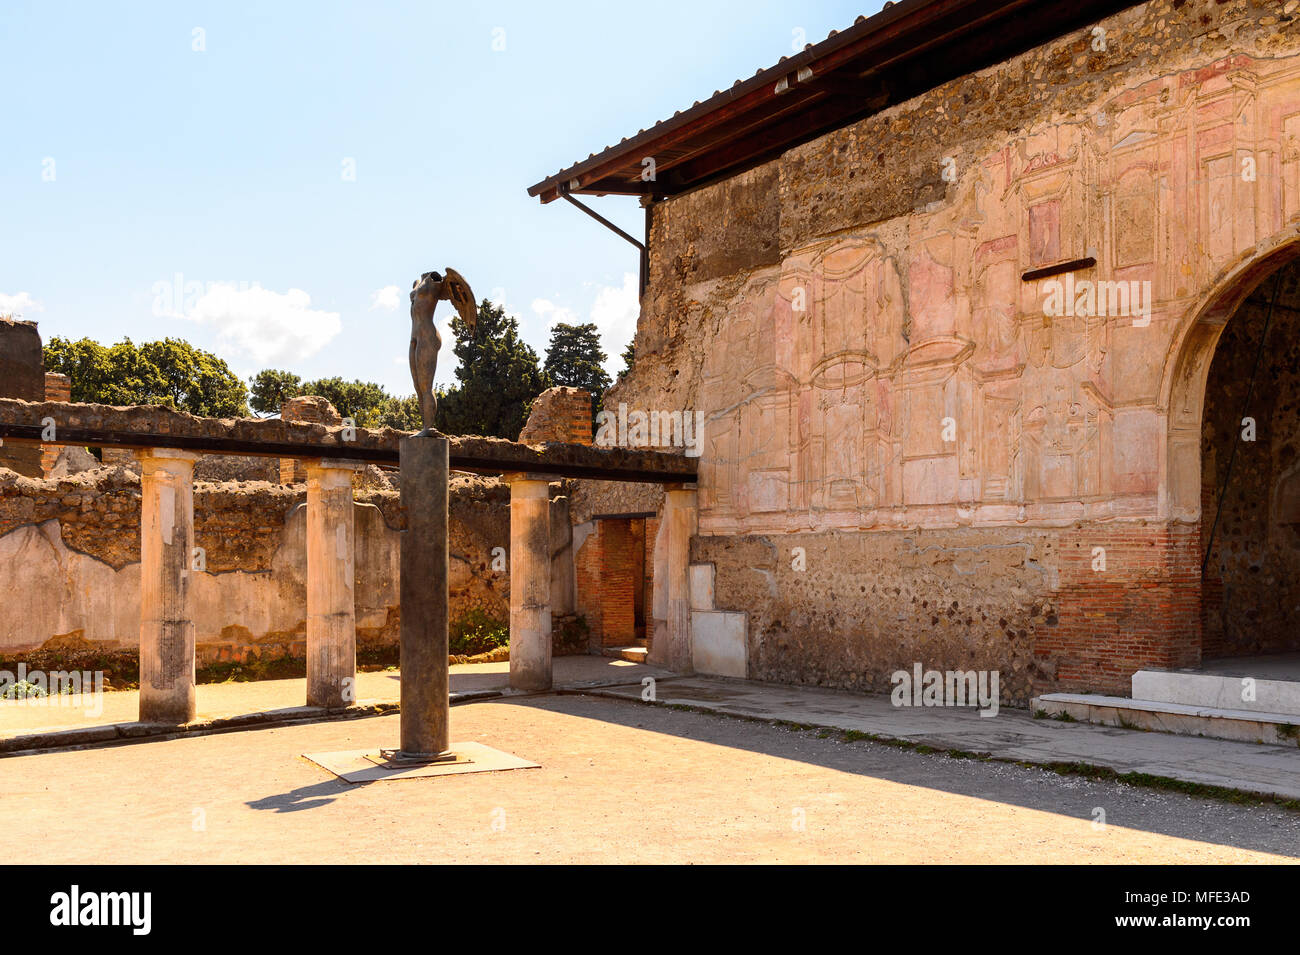 Pompeii, an ancient Roman town destroyed by the volcano Vesuvius. UNESCO World Heritage site - Stock Image